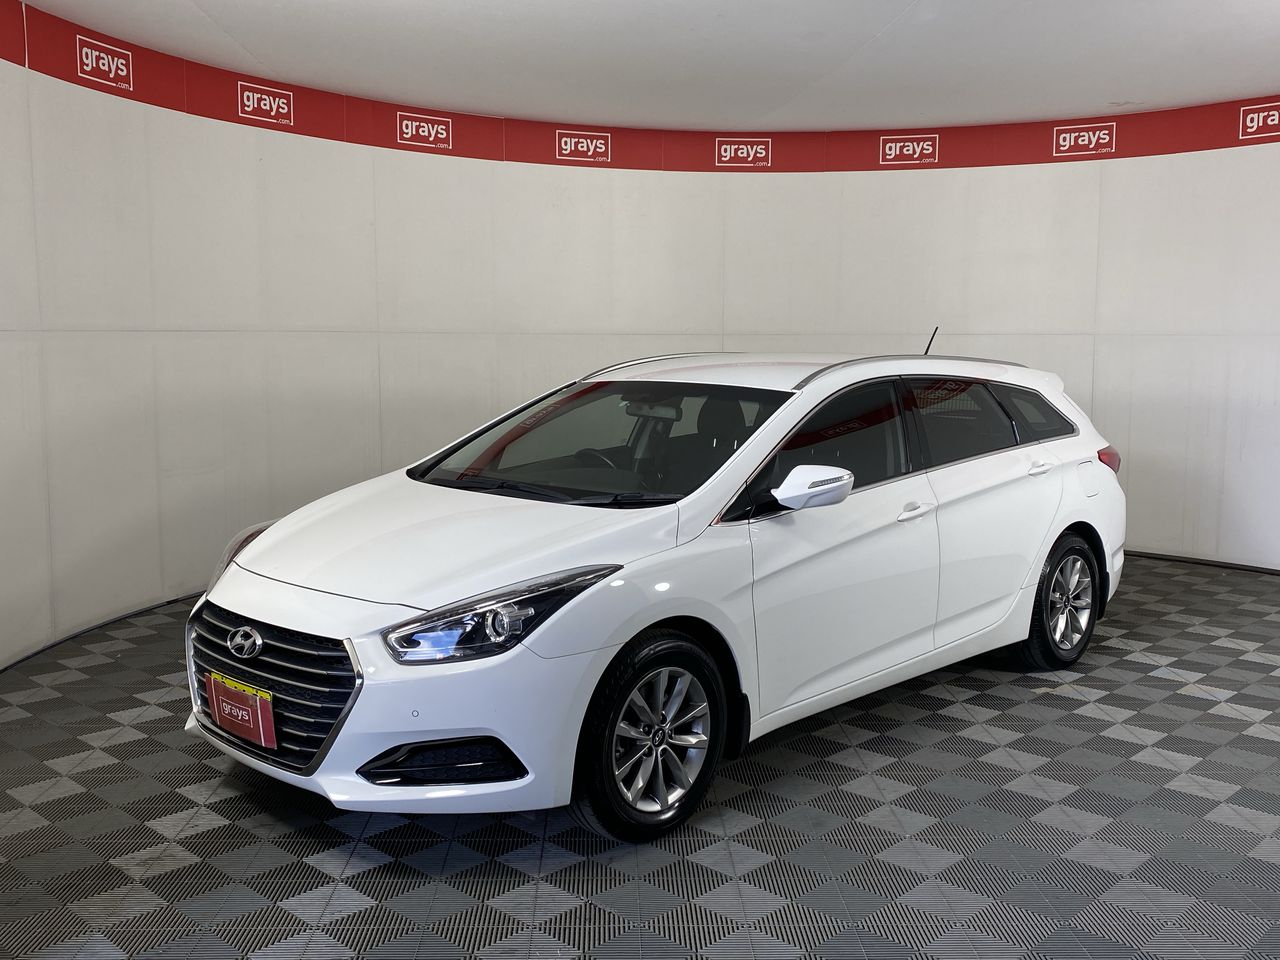 2017 Hyundai i40 Active VF Automatic Wagon